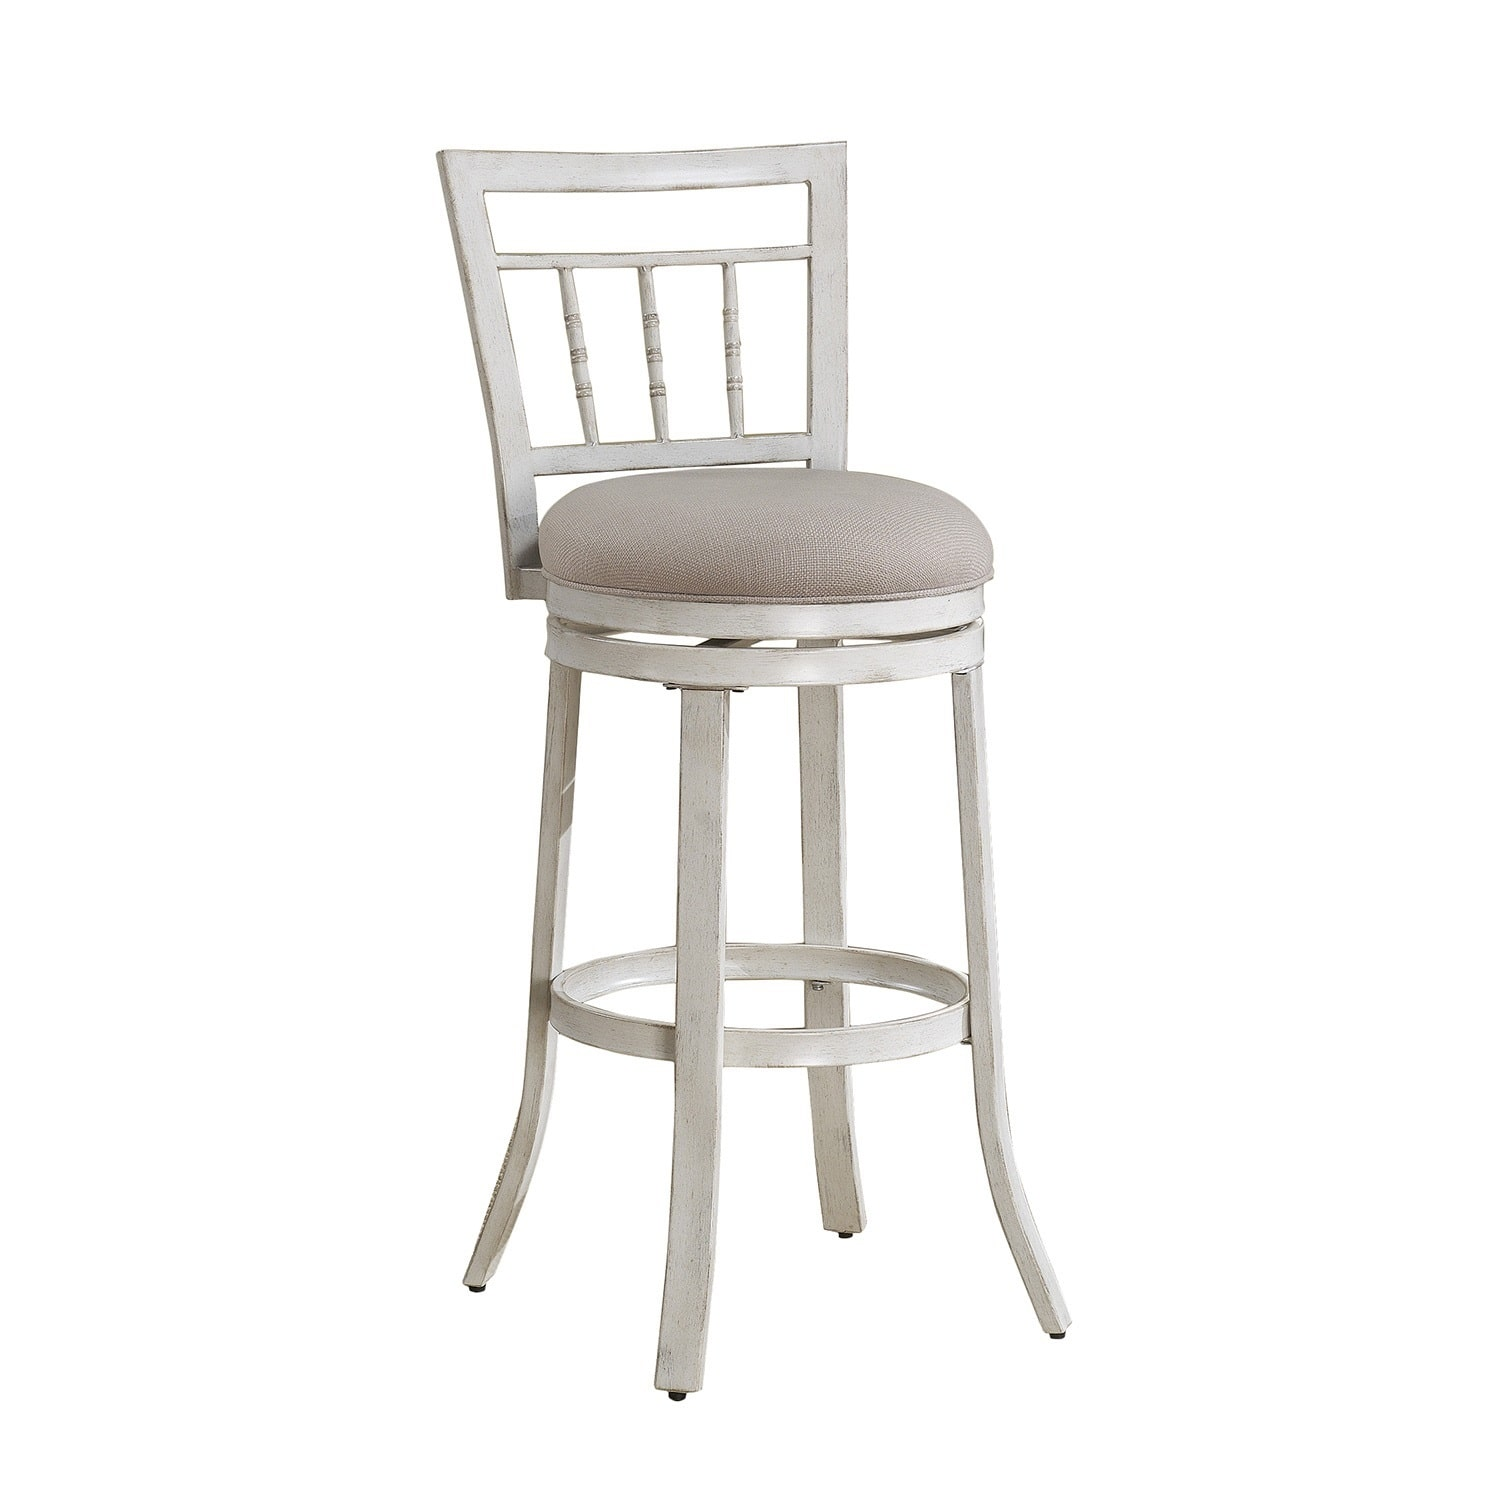 Greyson Living Gaby 30 Inch Bar Stool By Walmart Com